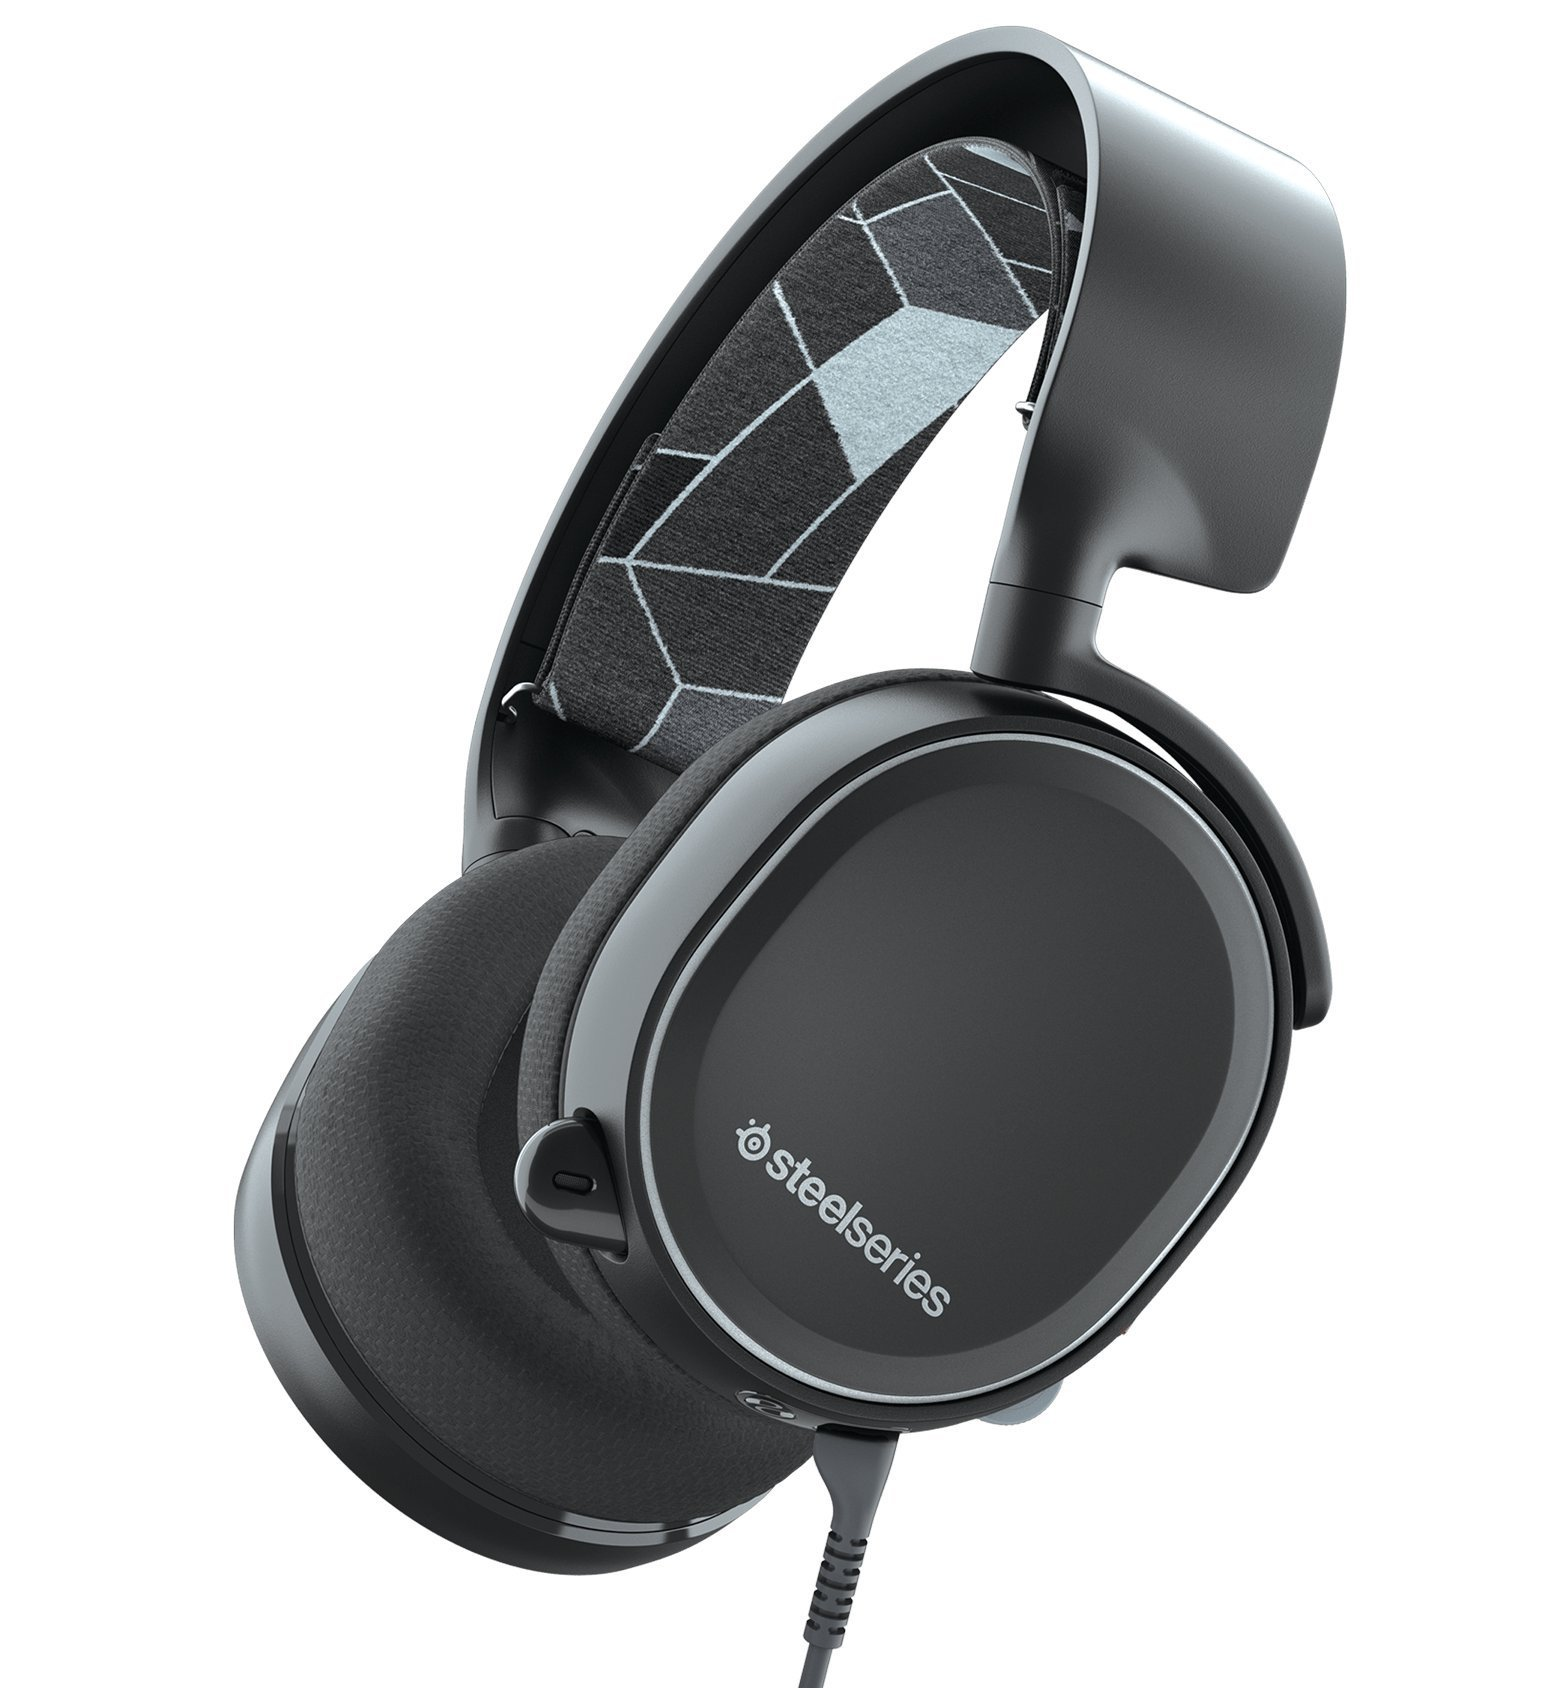 SteelSeries Arctis 3 Console Edition Gaming Headset for PlayStation, Xbox One, Nintendo Switch, VR, and Mobile - Black (Renewed) by SteelSeries